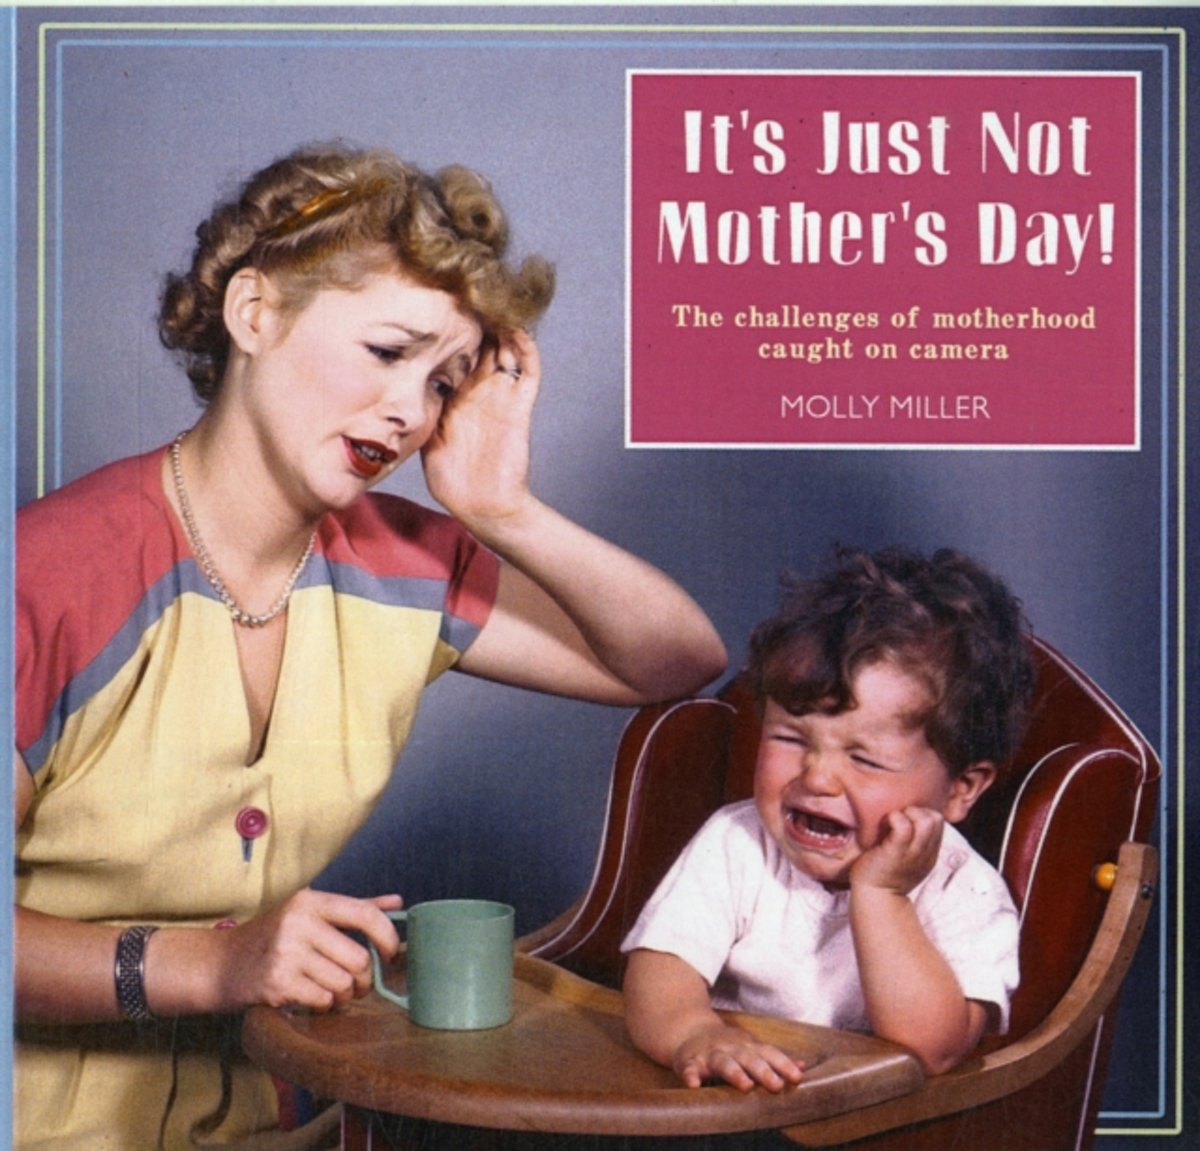 It's Just Not Mother's Day